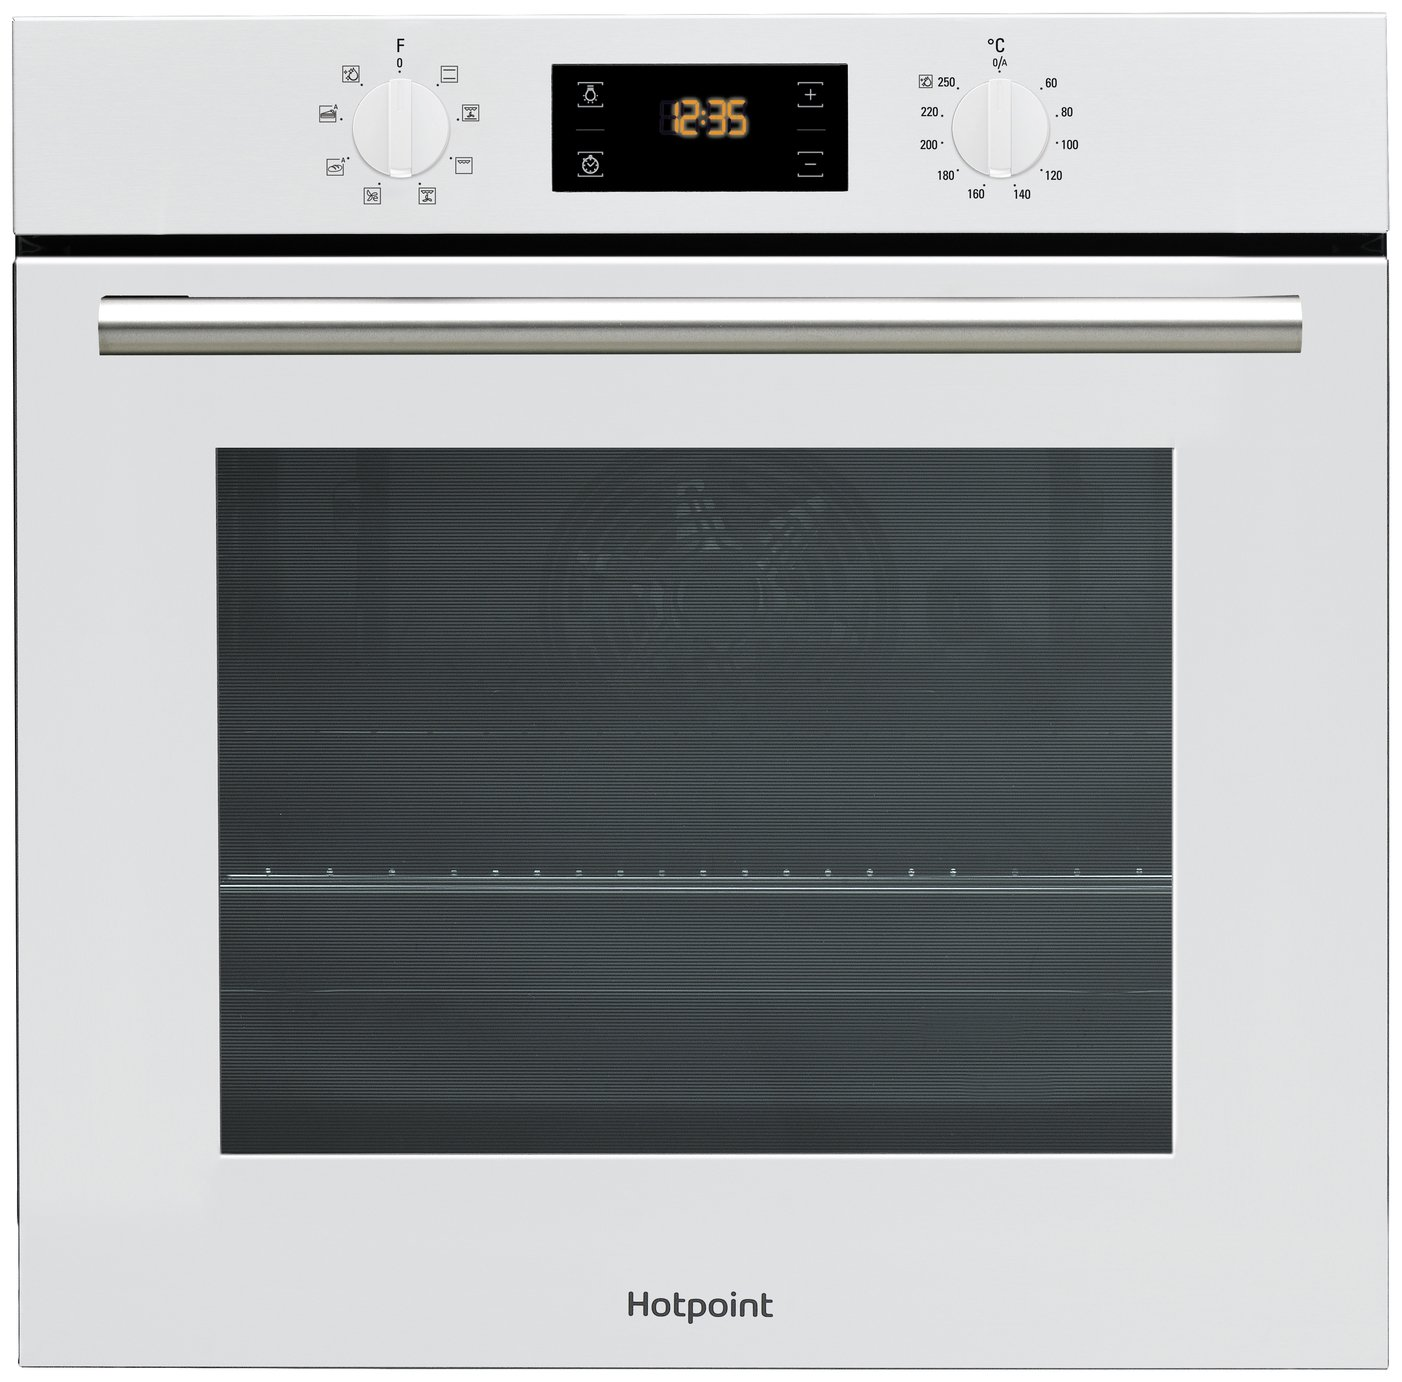 Hotpoint - SA2540HWH Electric Fan Oven - White from hotpoint